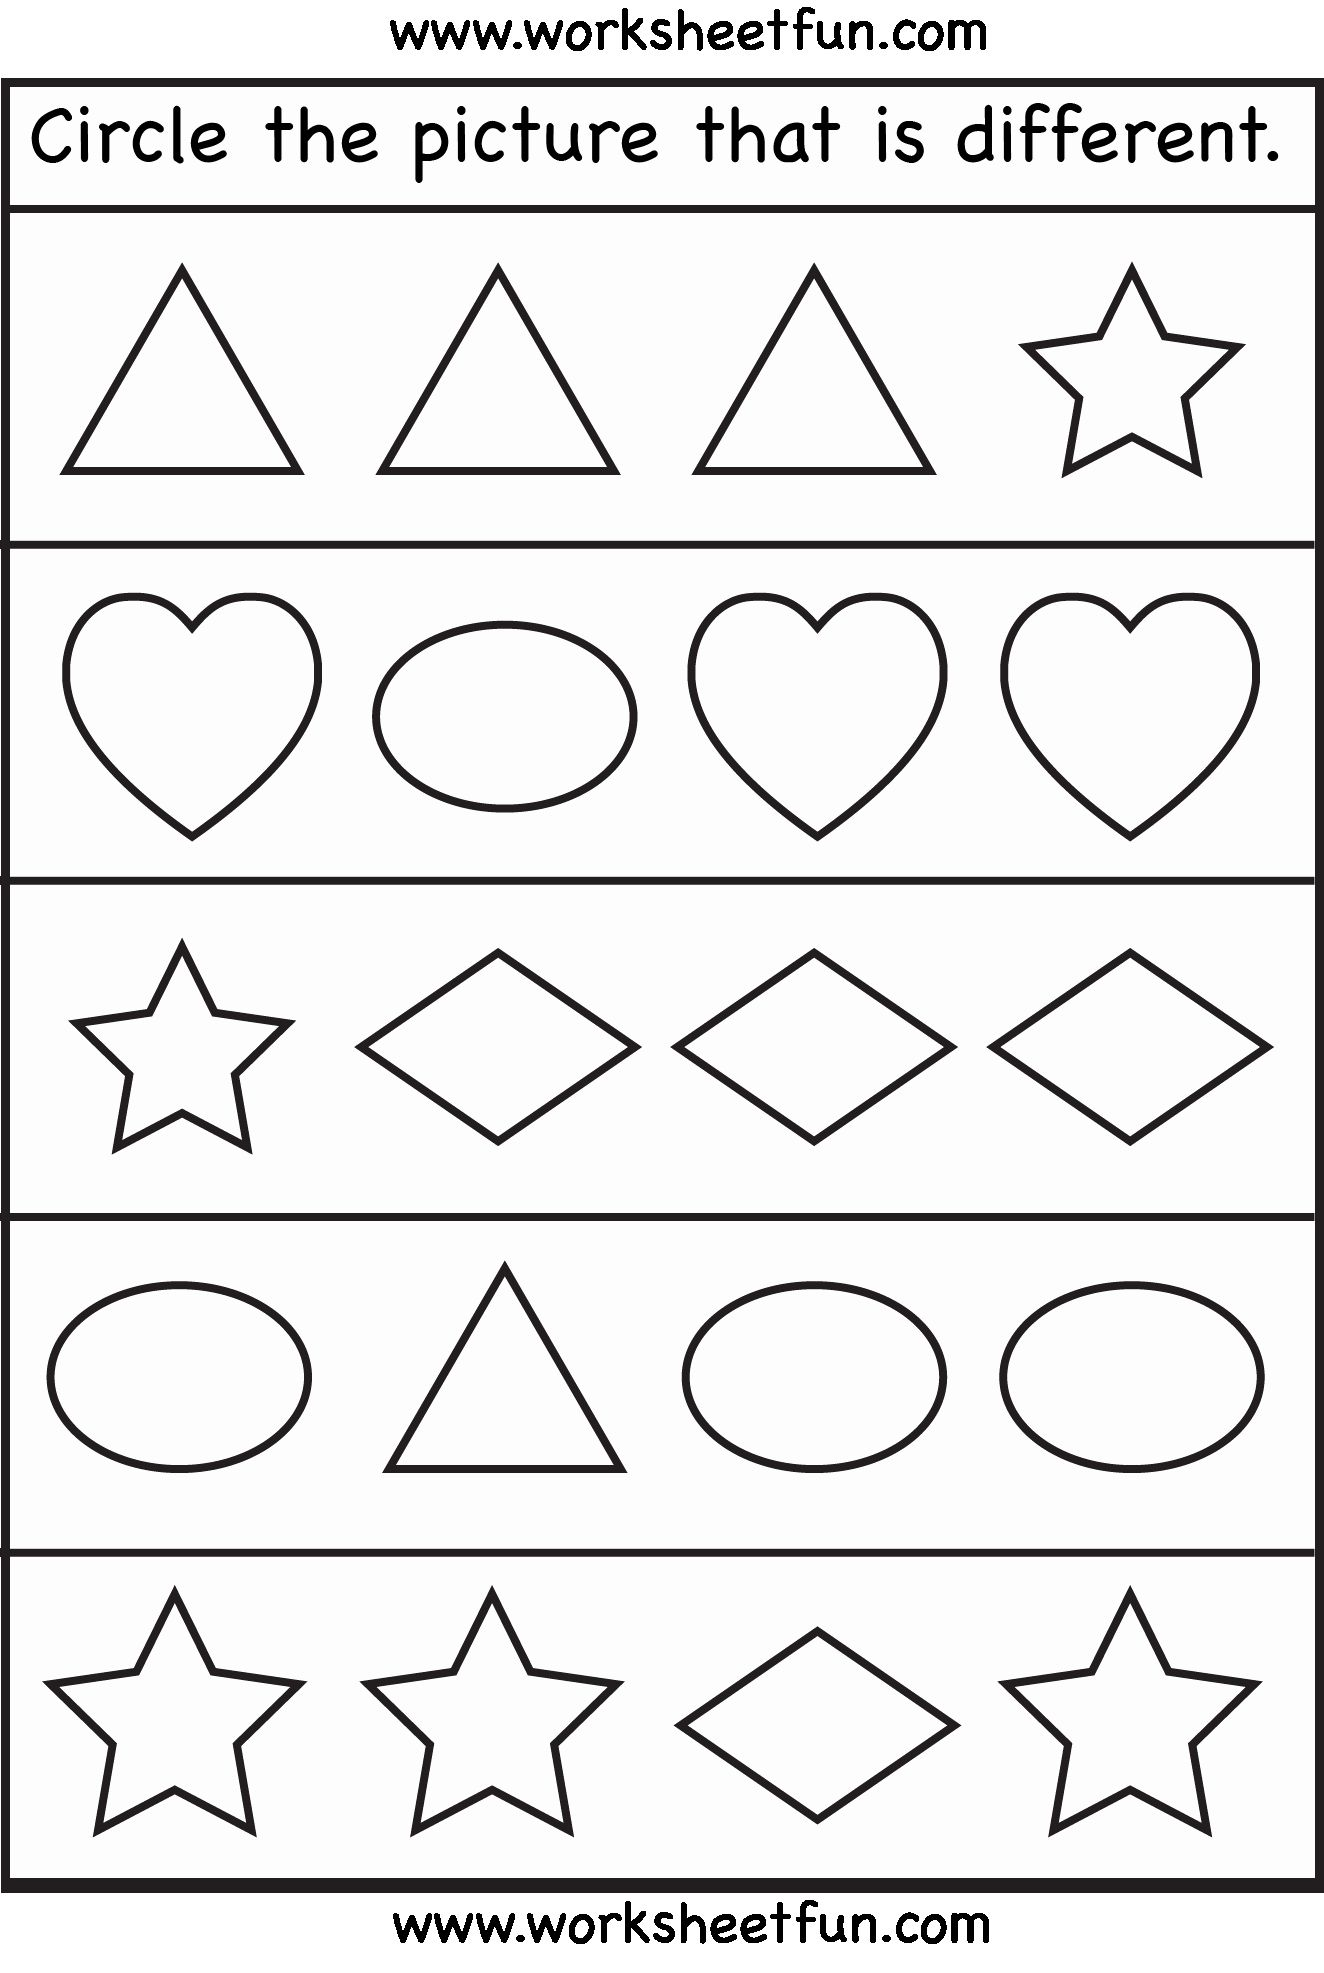 Same Or Different Worksheets Preschool In